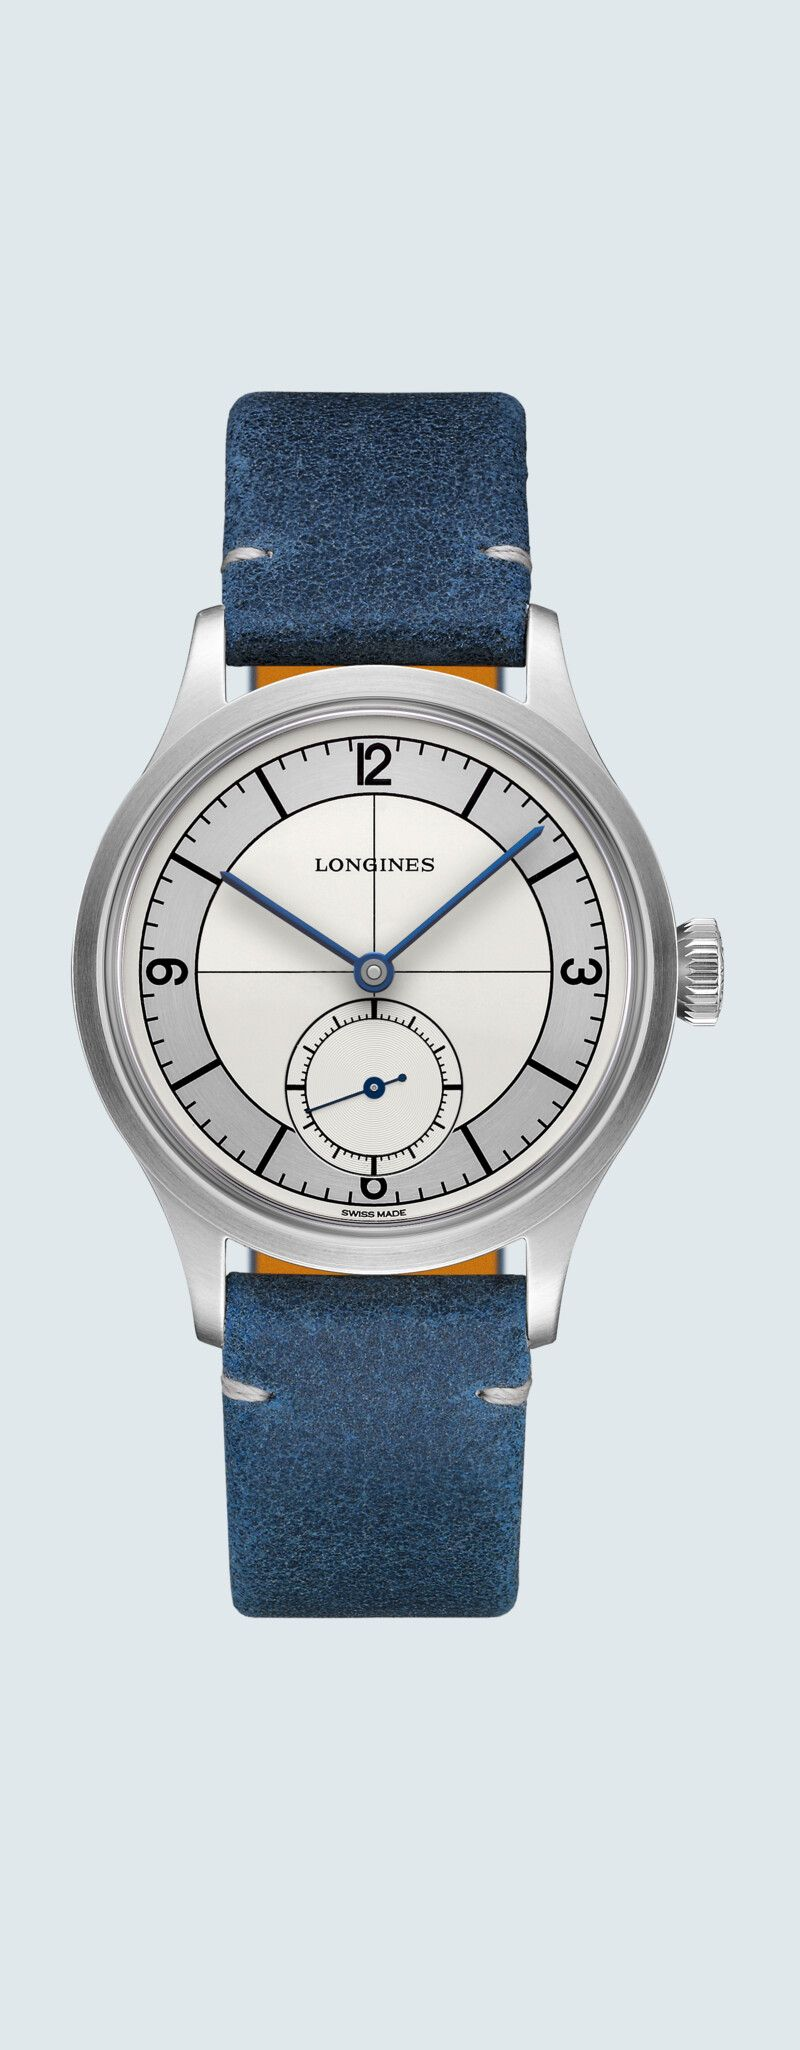 38.50 mm Stainless steel case with Silver dial and Leather strap Blue strap - case zoom view